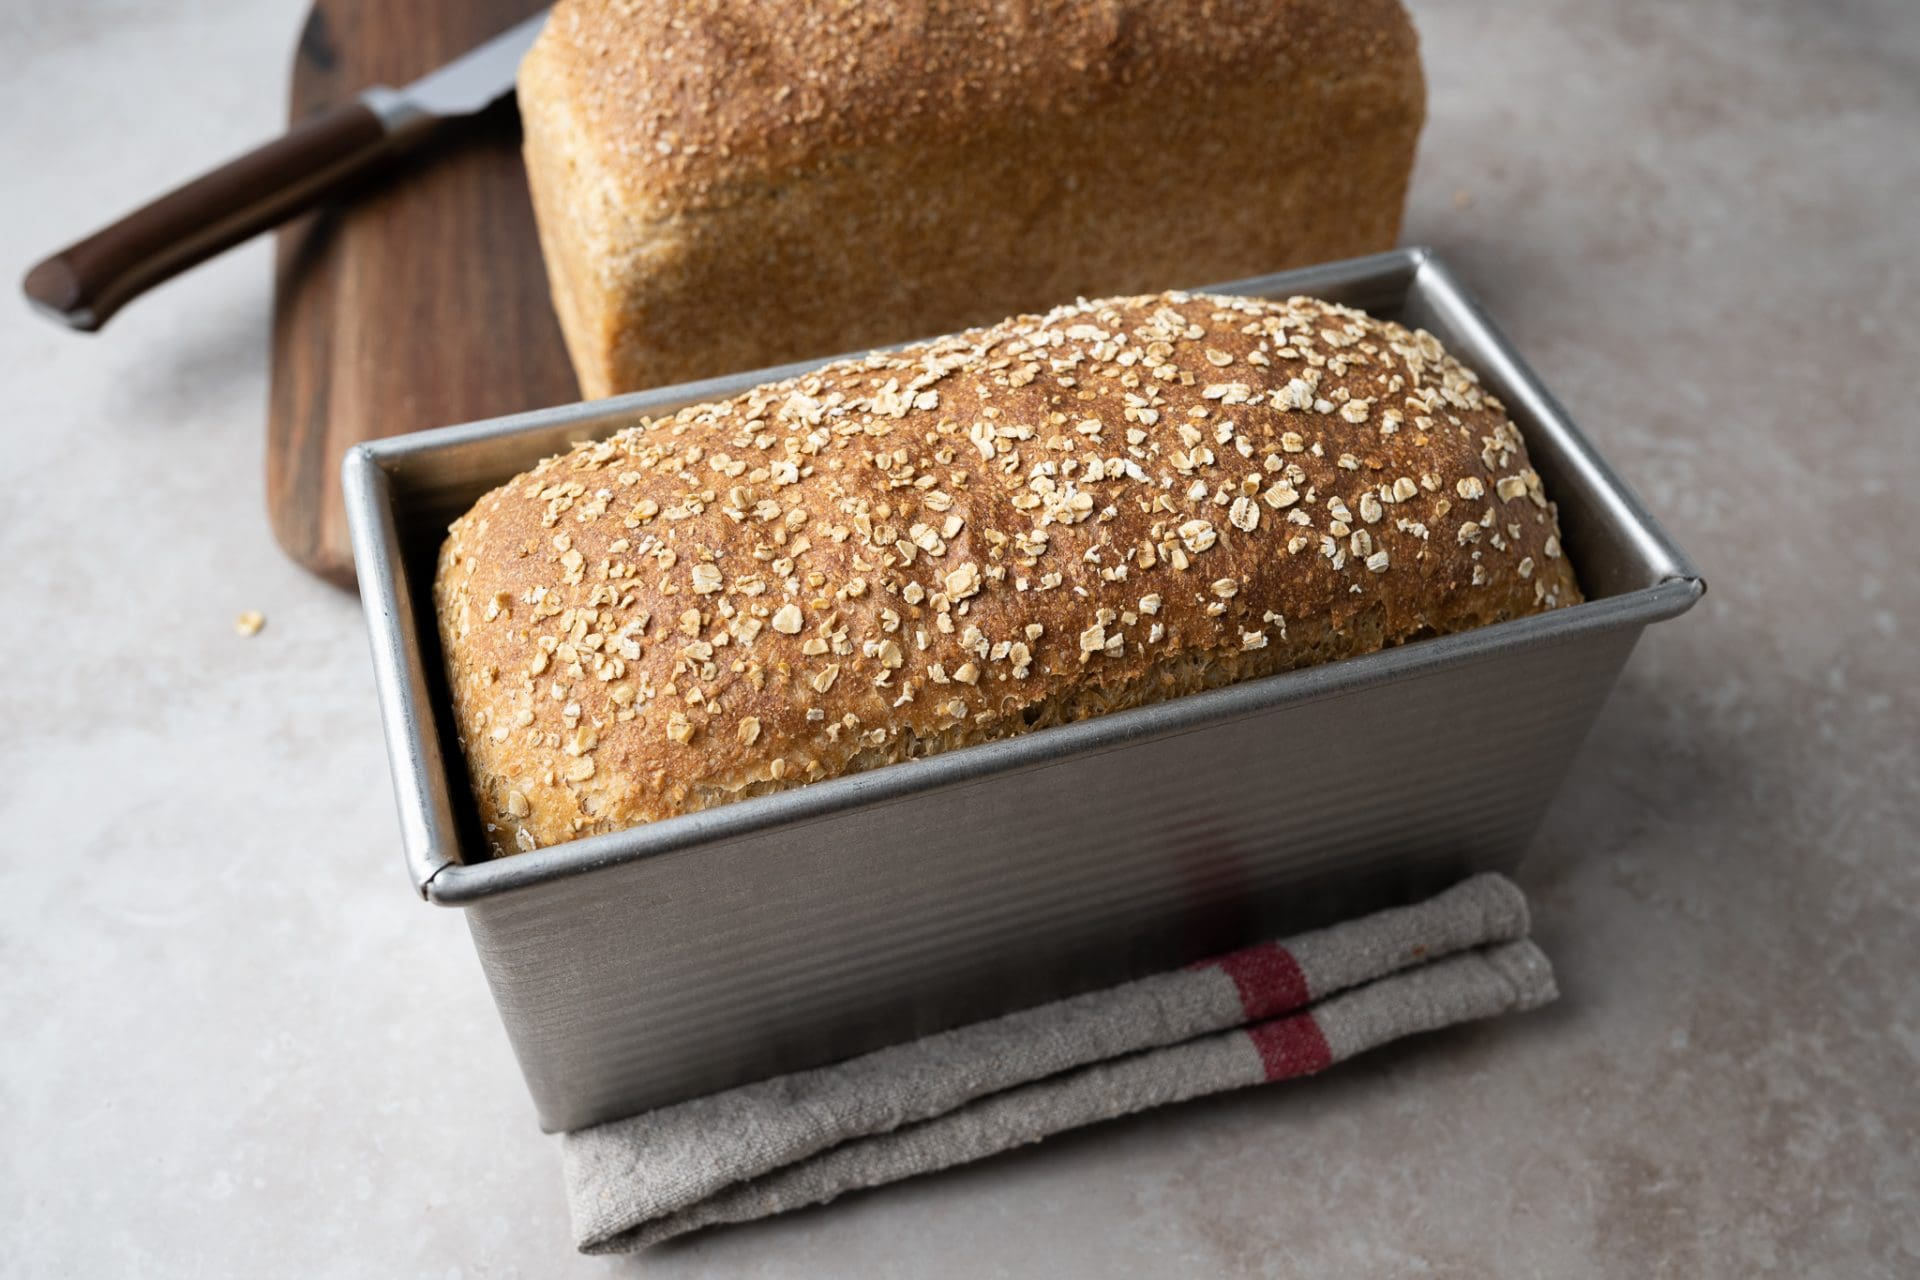 Sandwich bread topped with rolled oats